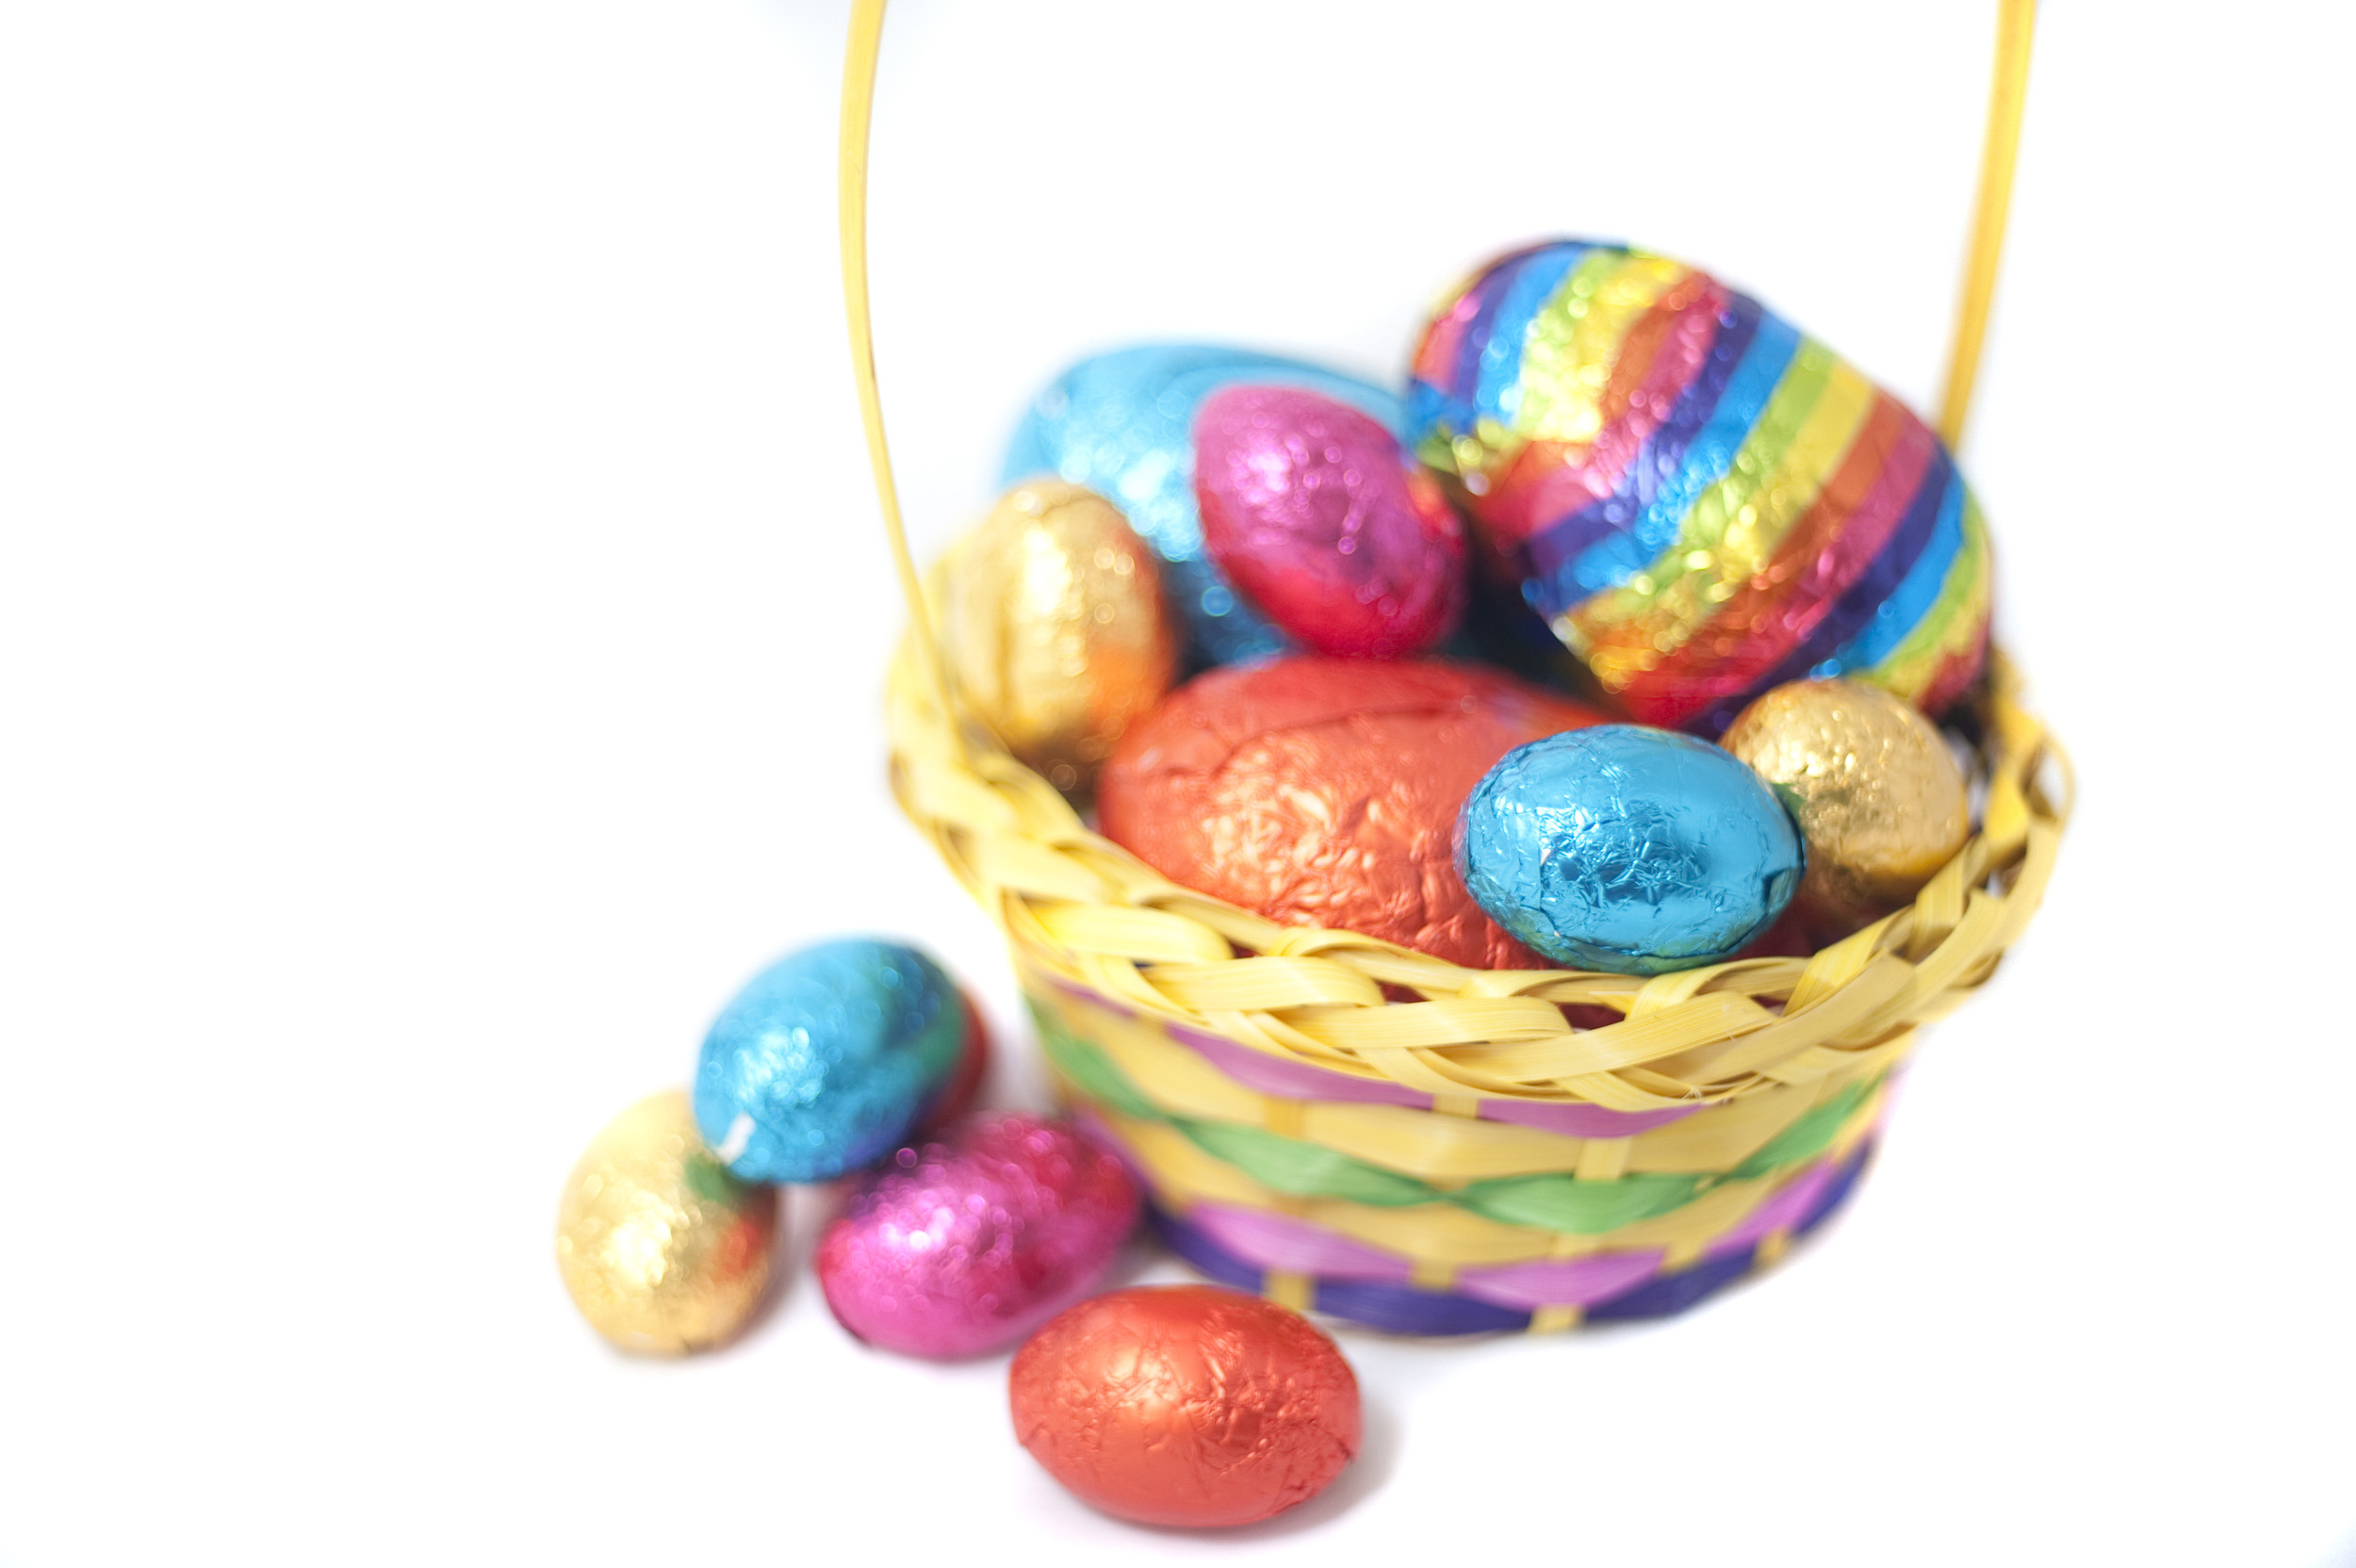 easter_basket_of_eggs.jpg - Easter Basket filled with an assortment of different sized colourful foil wrapped eggs with copyspace